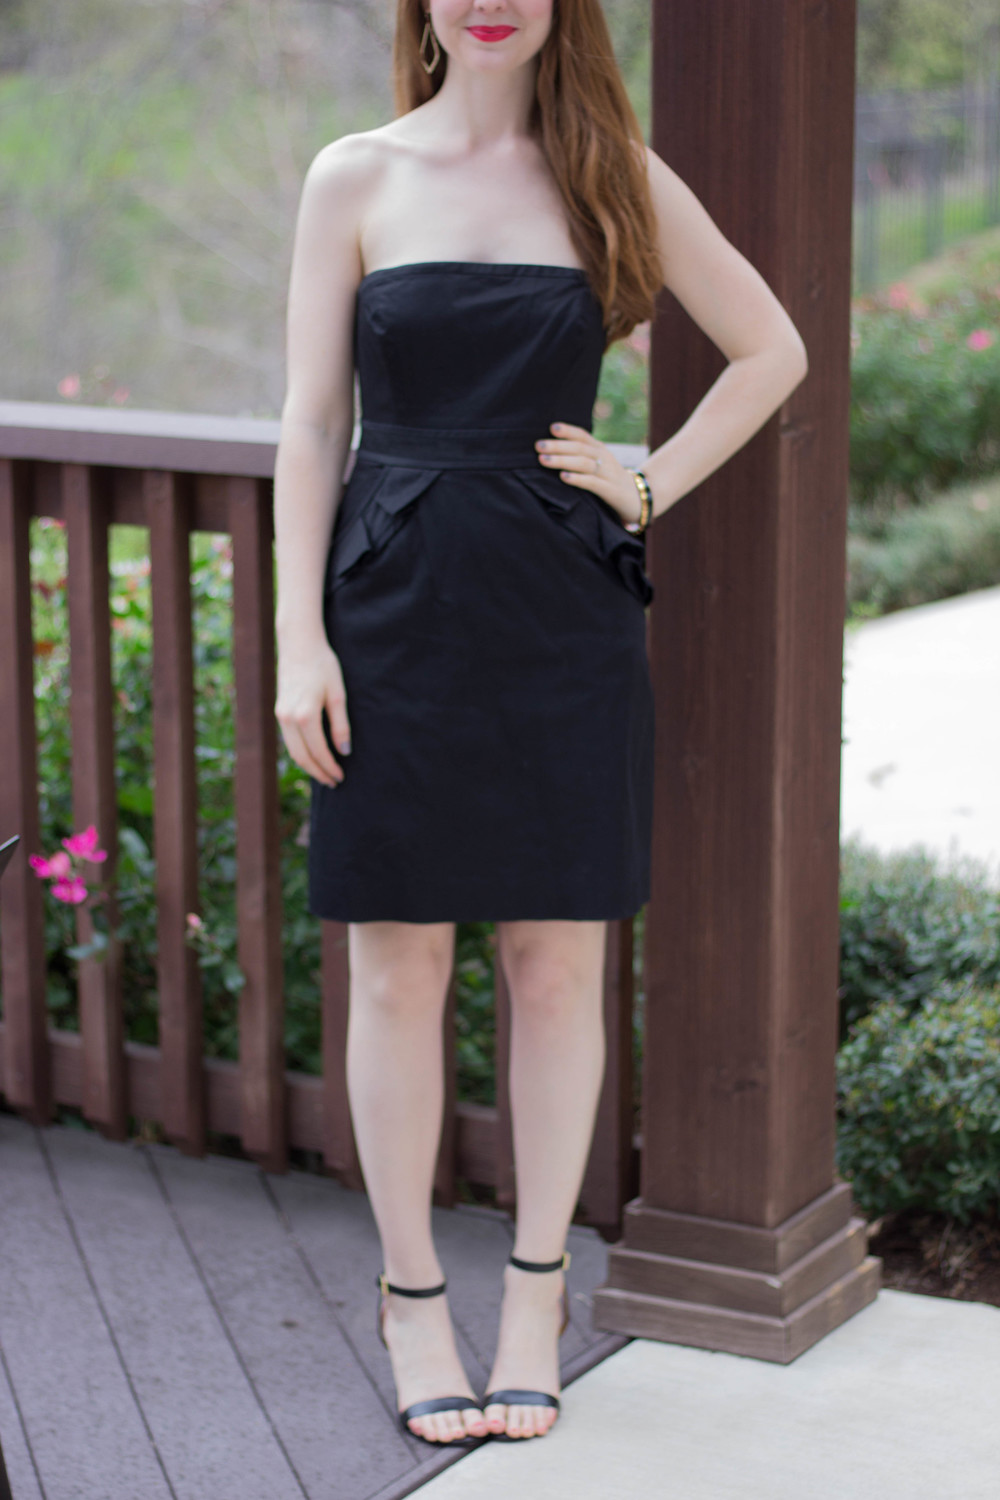 j crew black strapless dress, tory burch ankle strap sandal, cruella lipstick, kendra scott sophee earrings